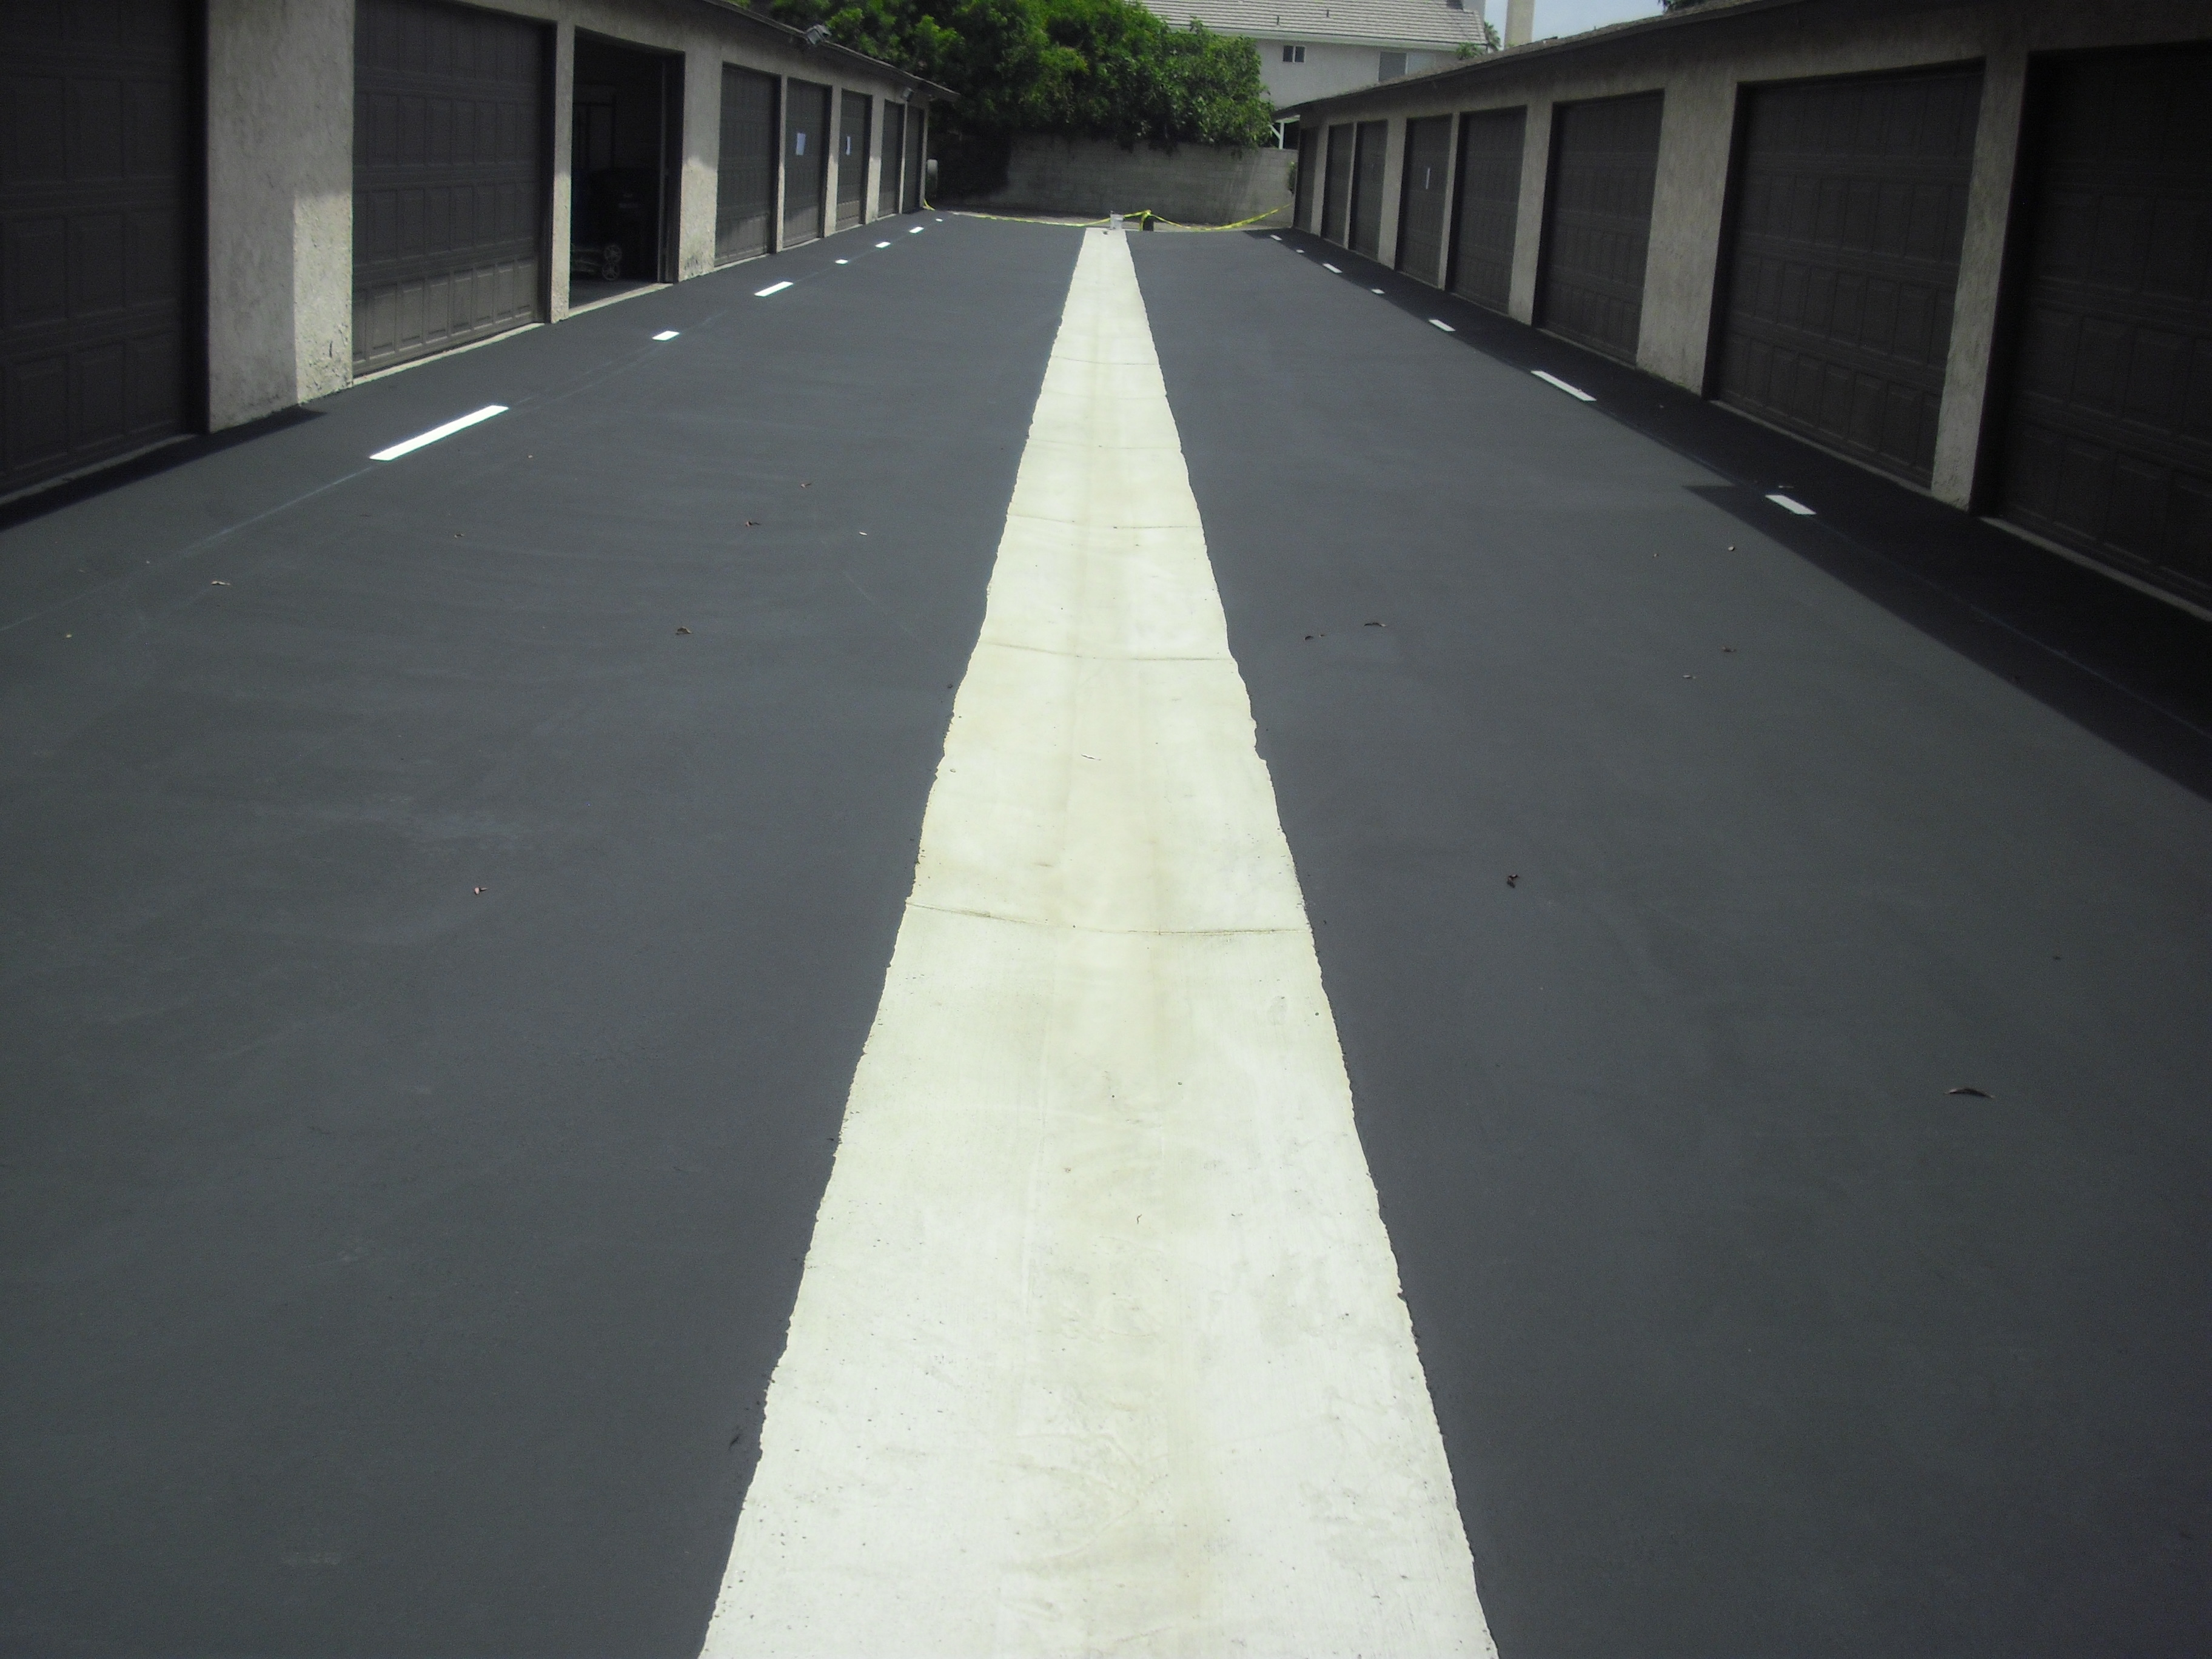 New Asphalt Pavement and Concrete Swell